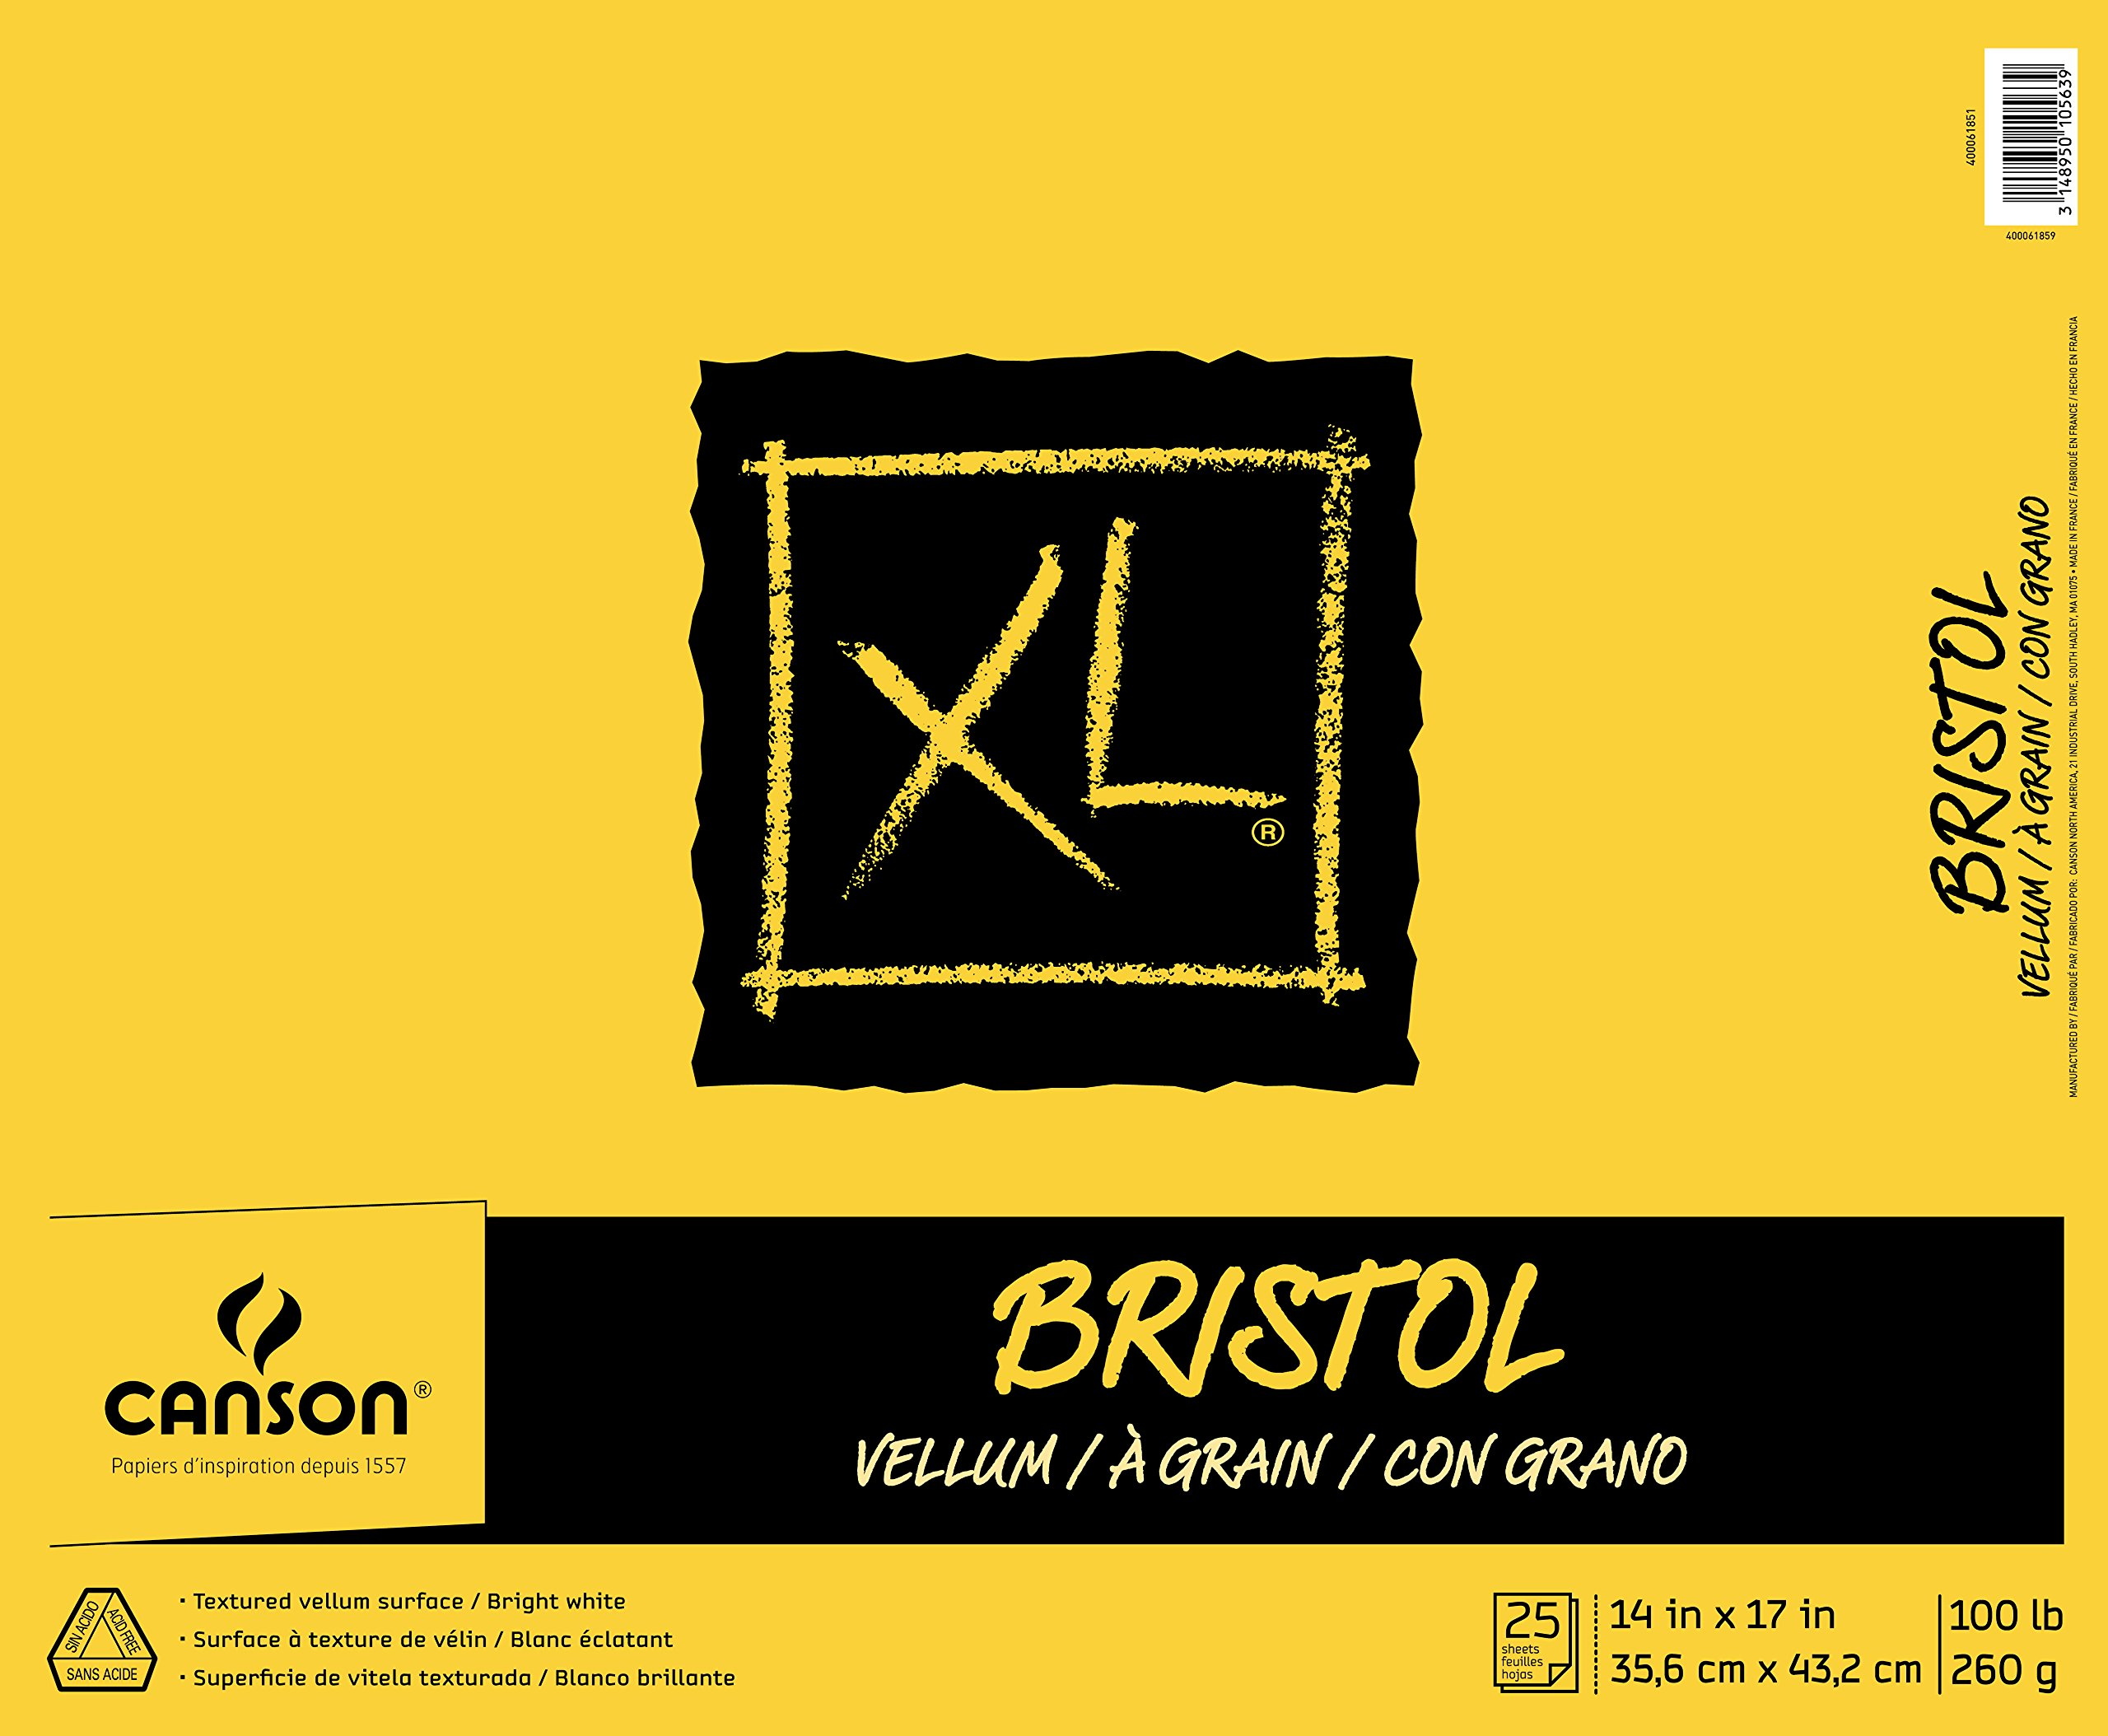 Canson XL Series Bristol Vellum Paper Pad, Heavyweight Paper for Pencil, Vellum Finish, Fold Over, 100 Pound, 14 x 17 Inch, Bright White, 25 Sheets by Canson